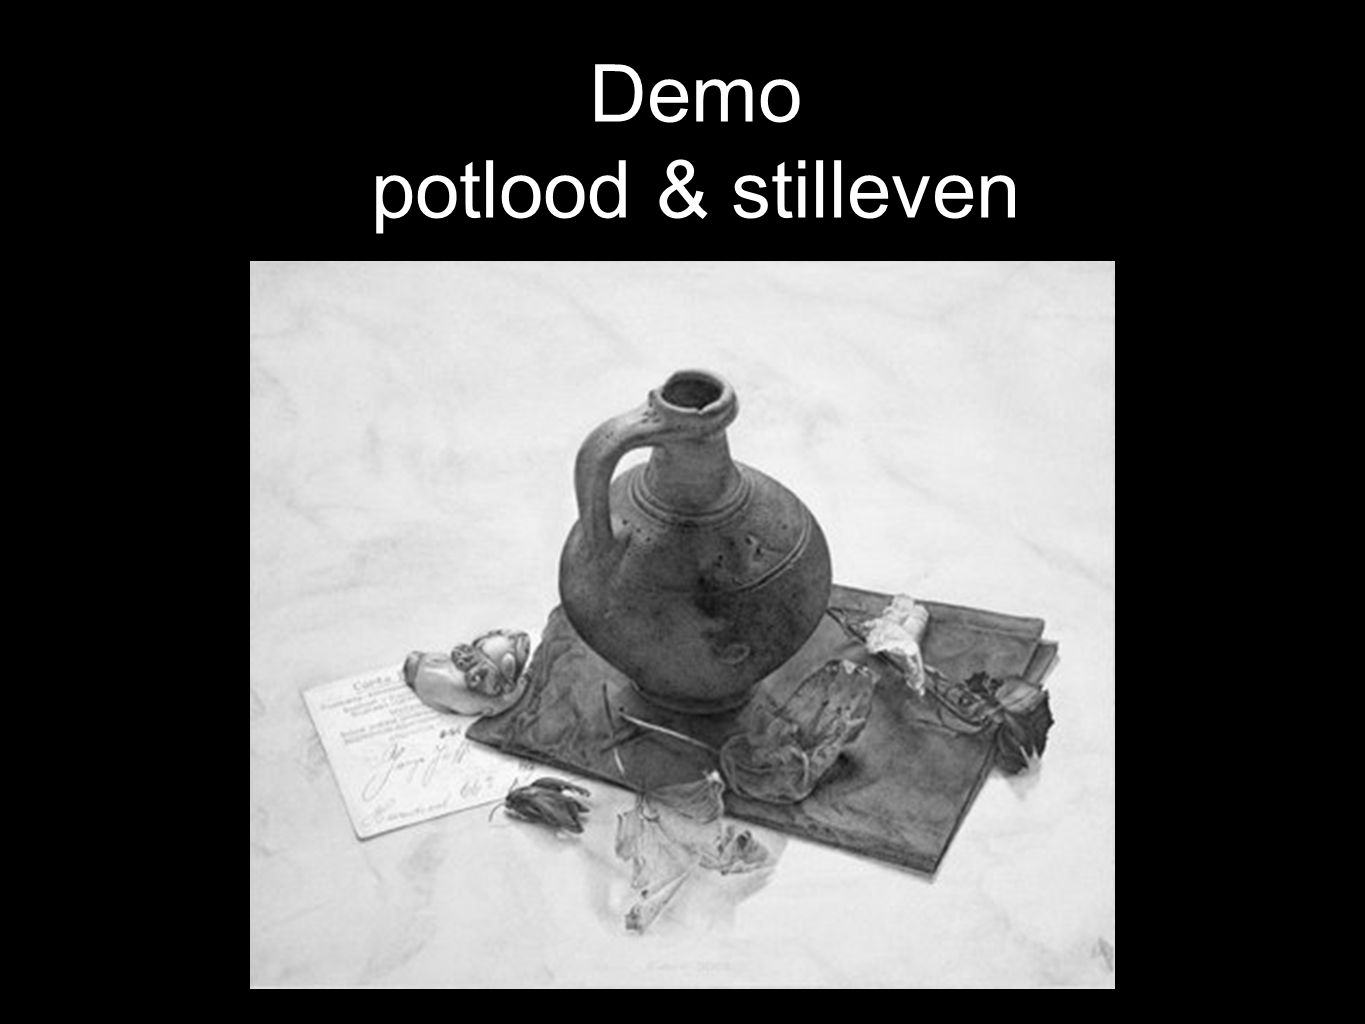 Demo potlood & stilleven